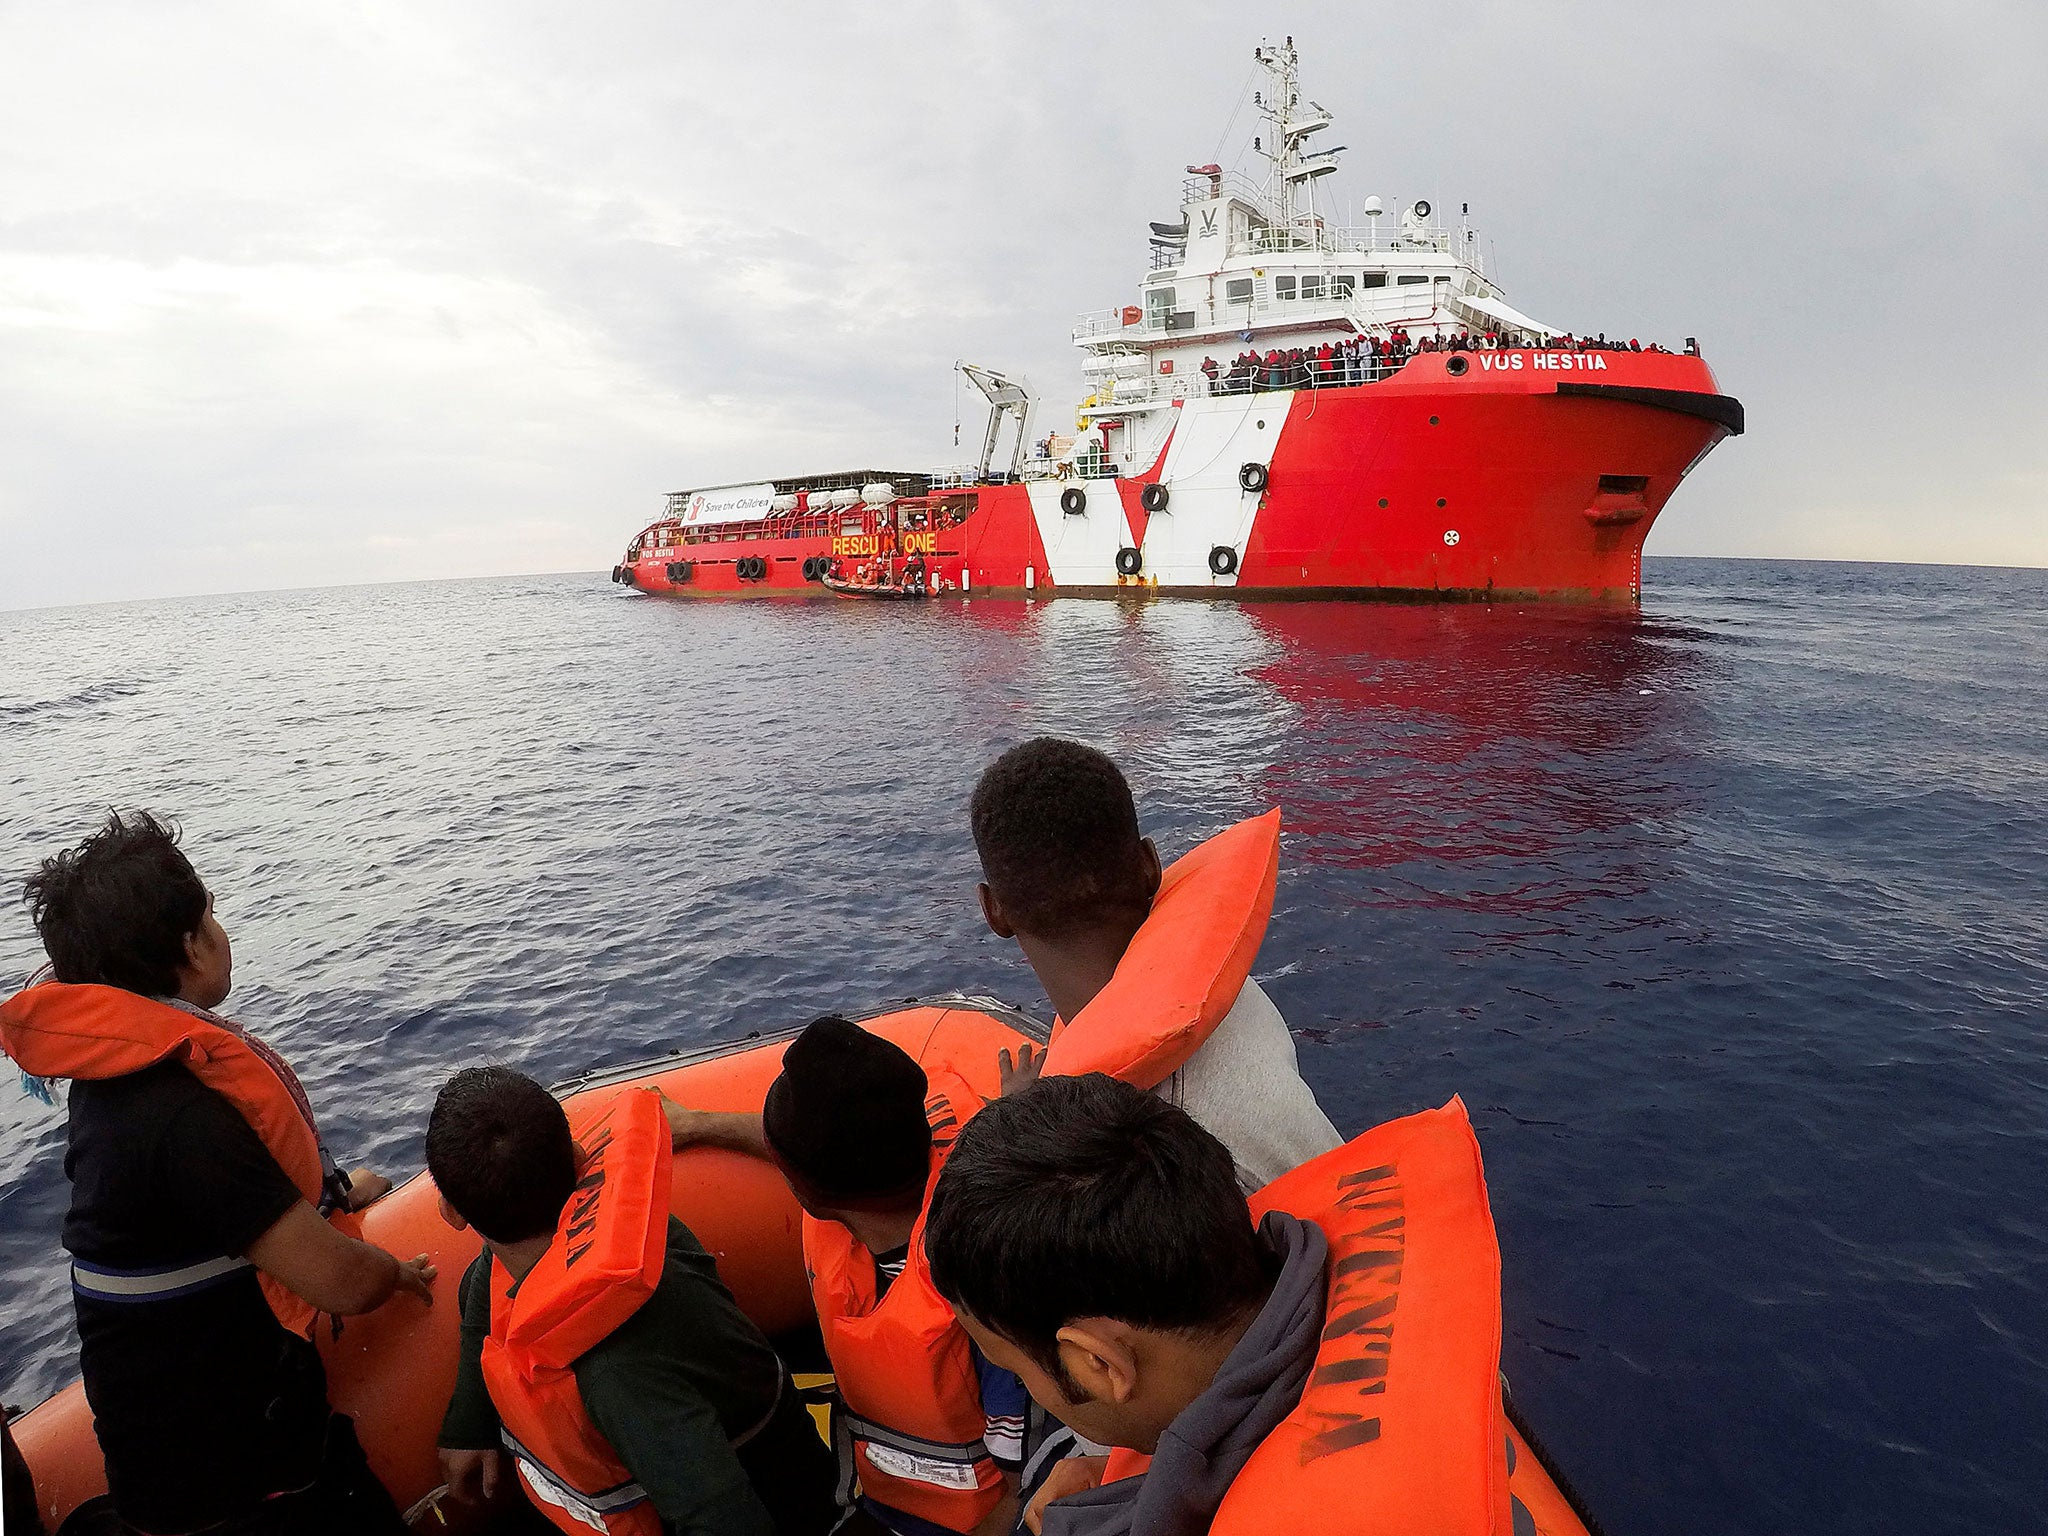 EU condemns rescue boats picking up drowning refugees in